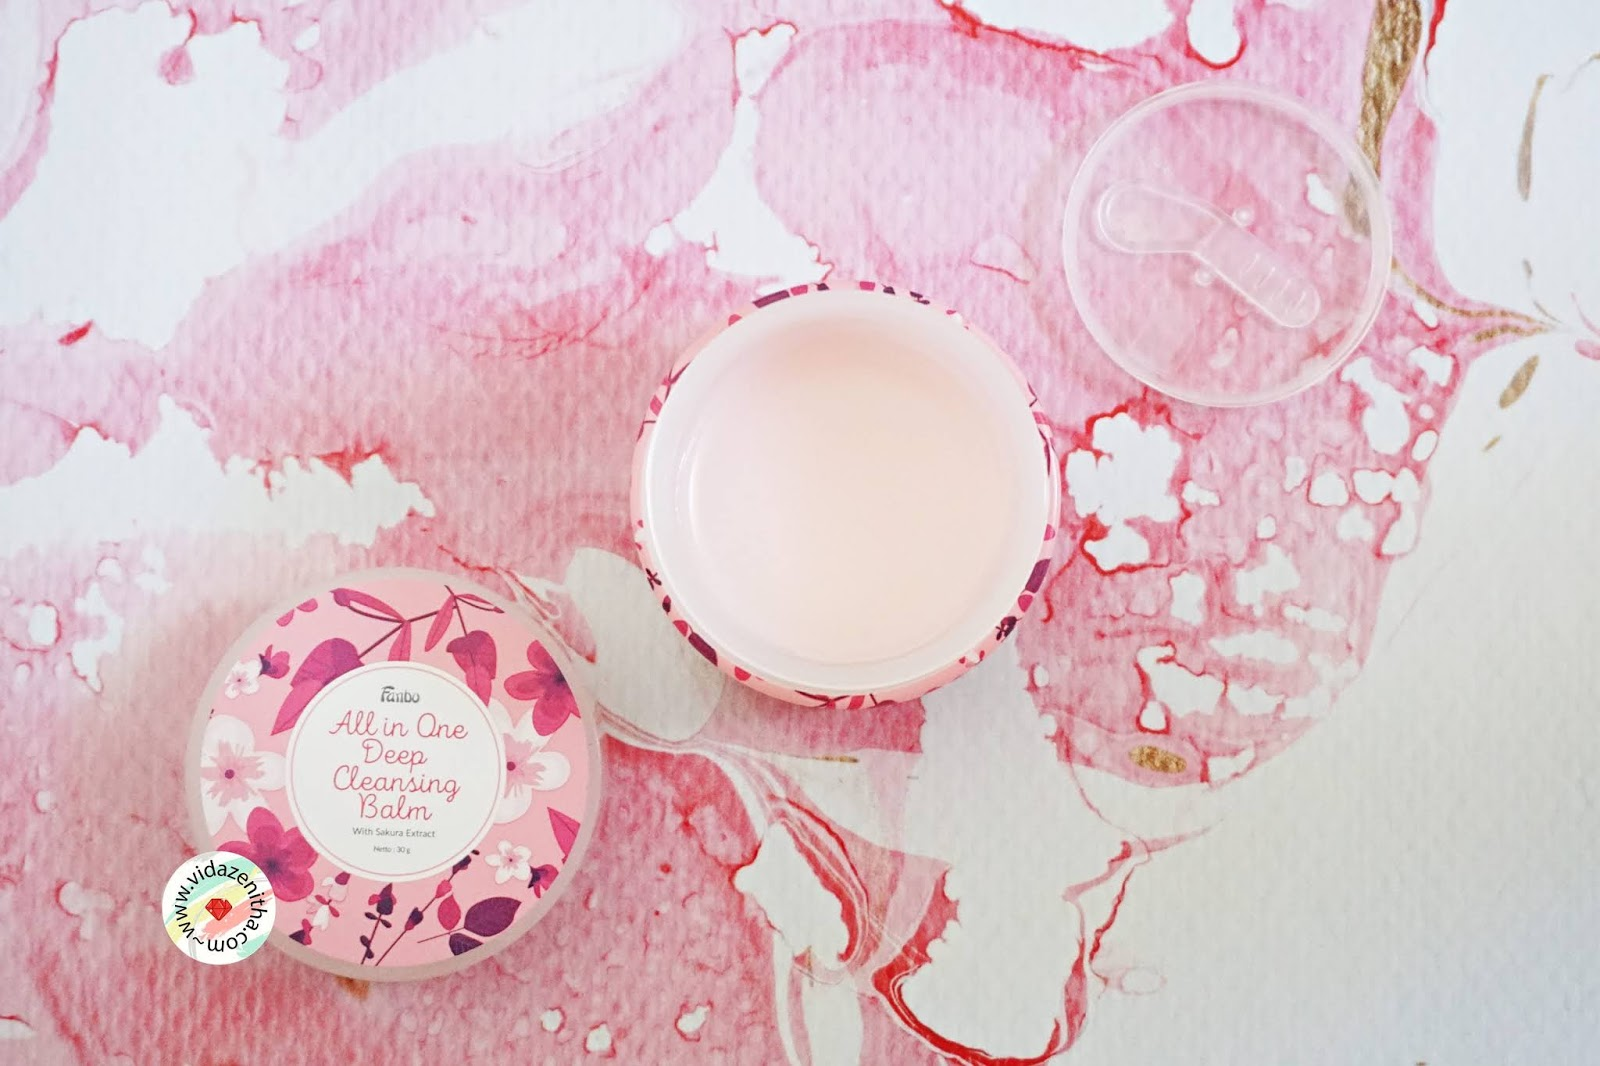 rekomendasi cleansing balm lokal fanbo all in one deep cleansing balm pink sakura